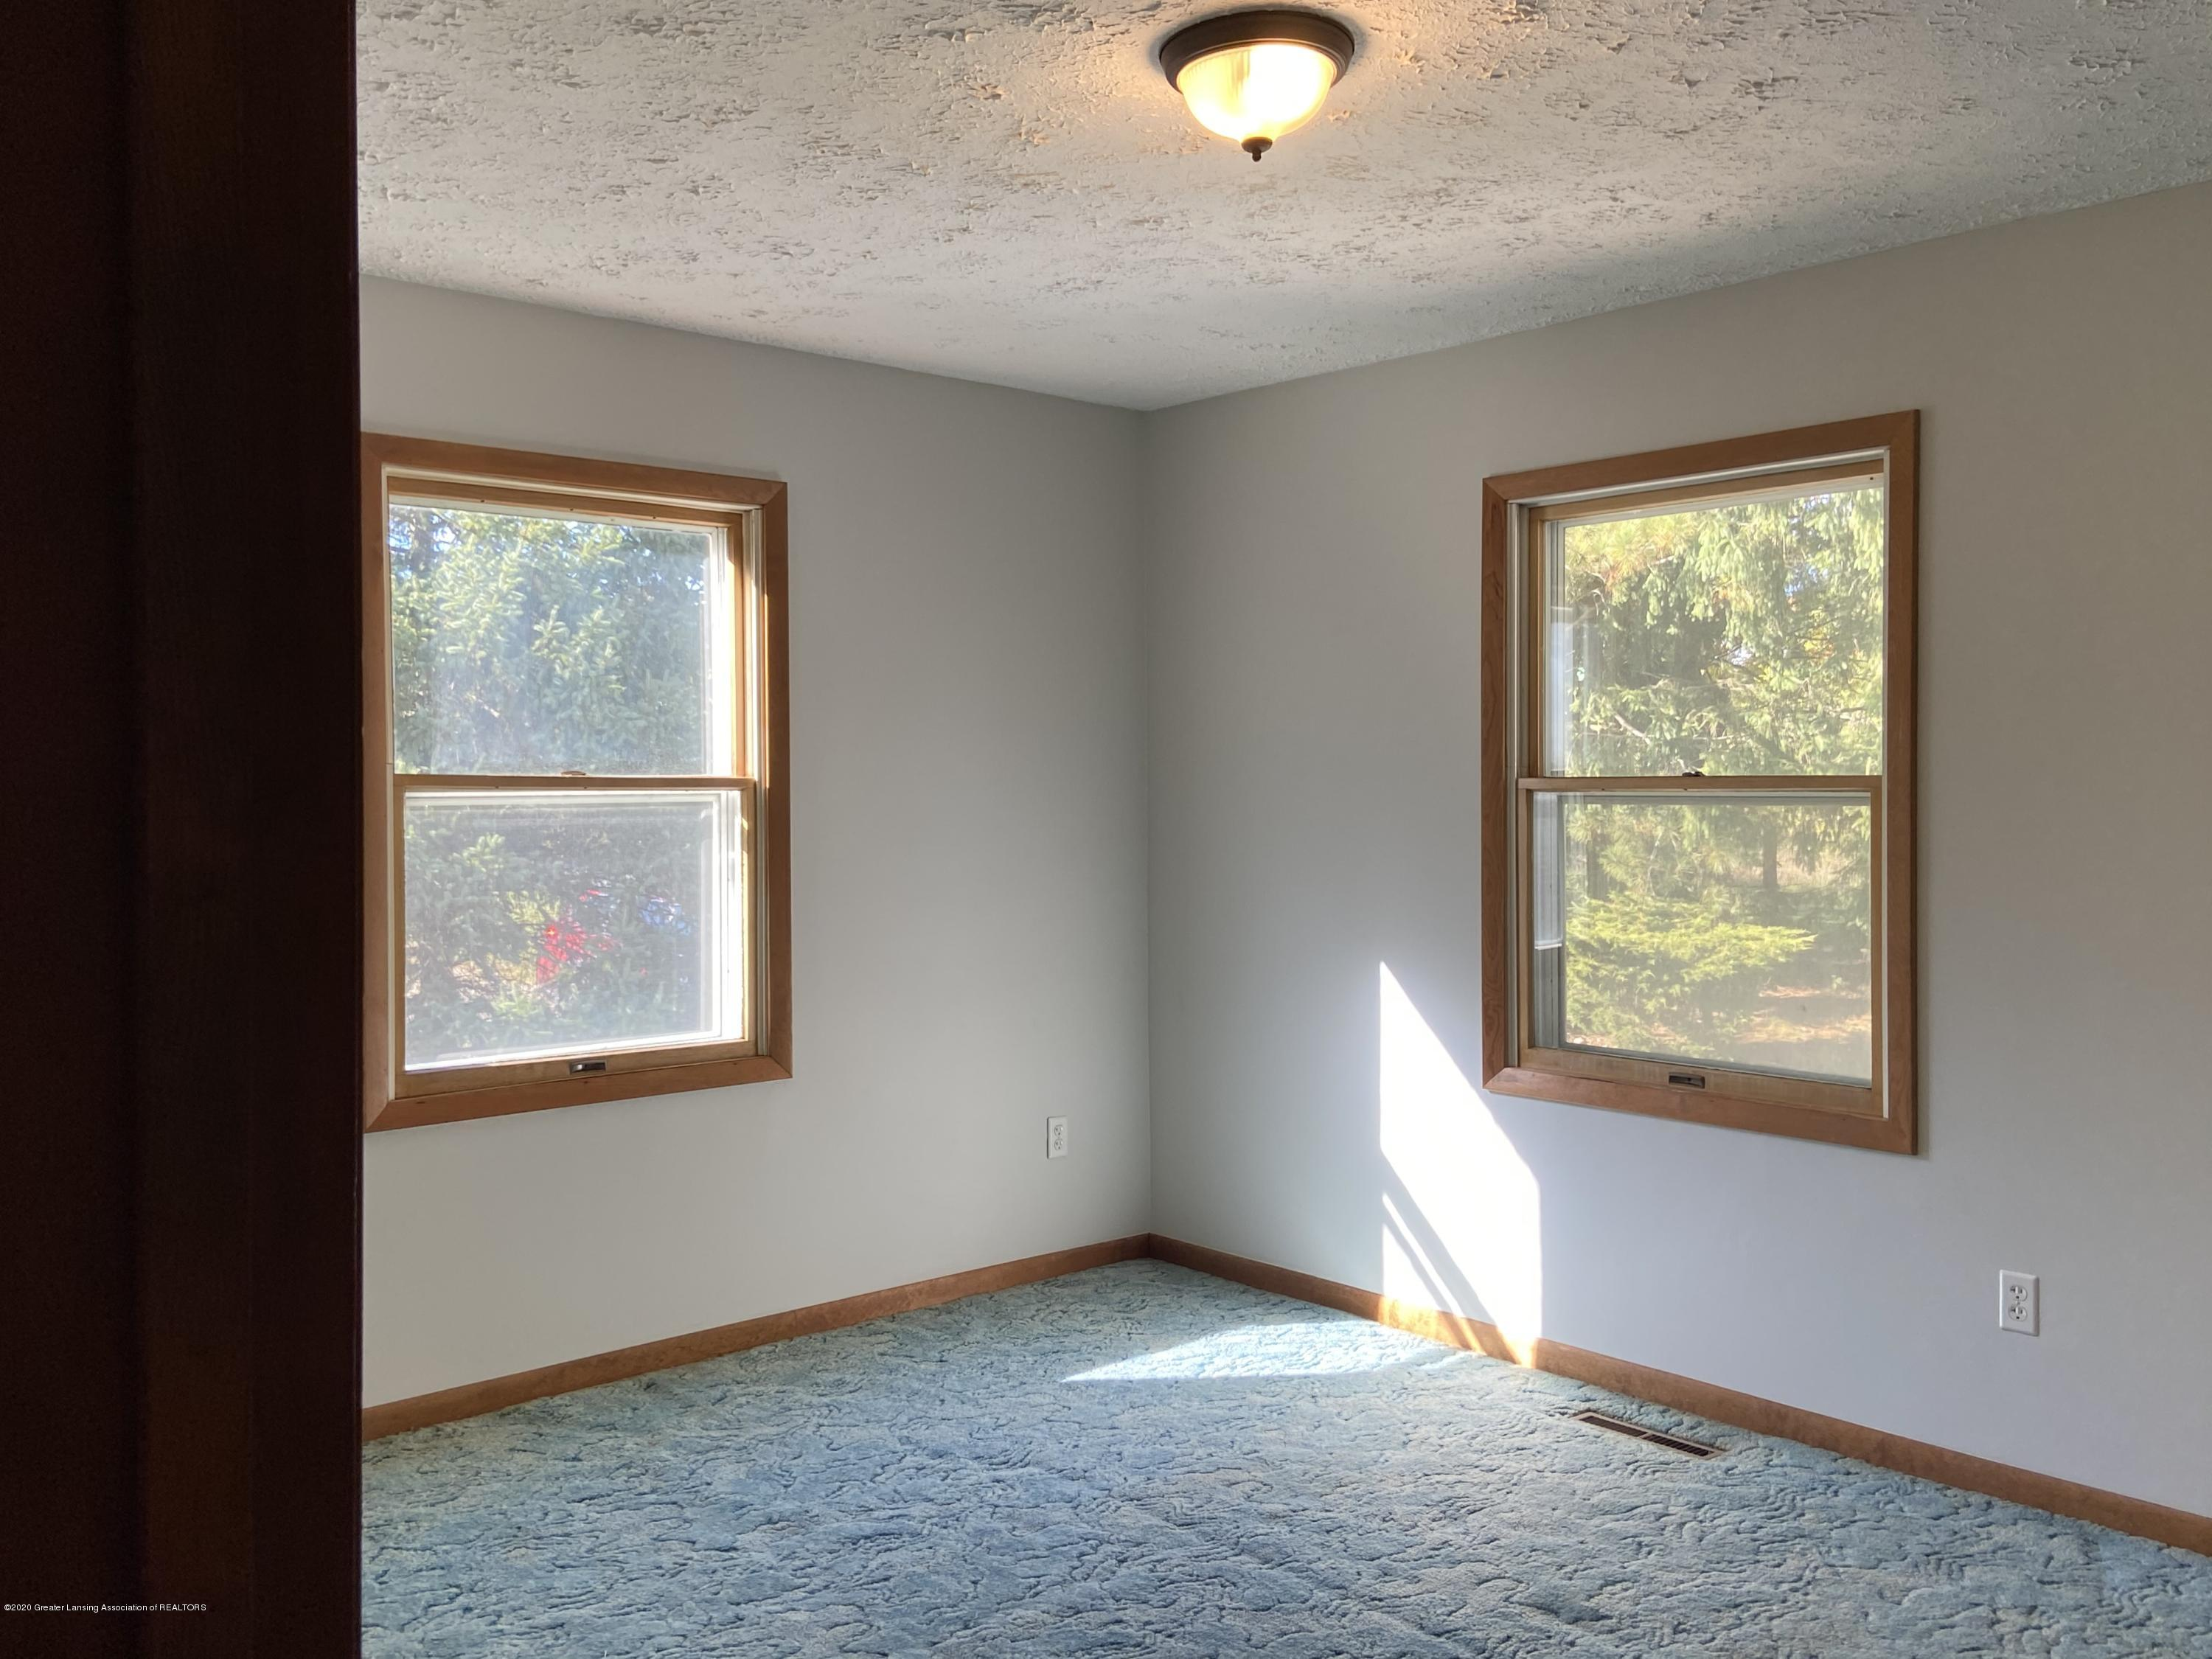 11801 Woodbury Rd - bedroom - 18